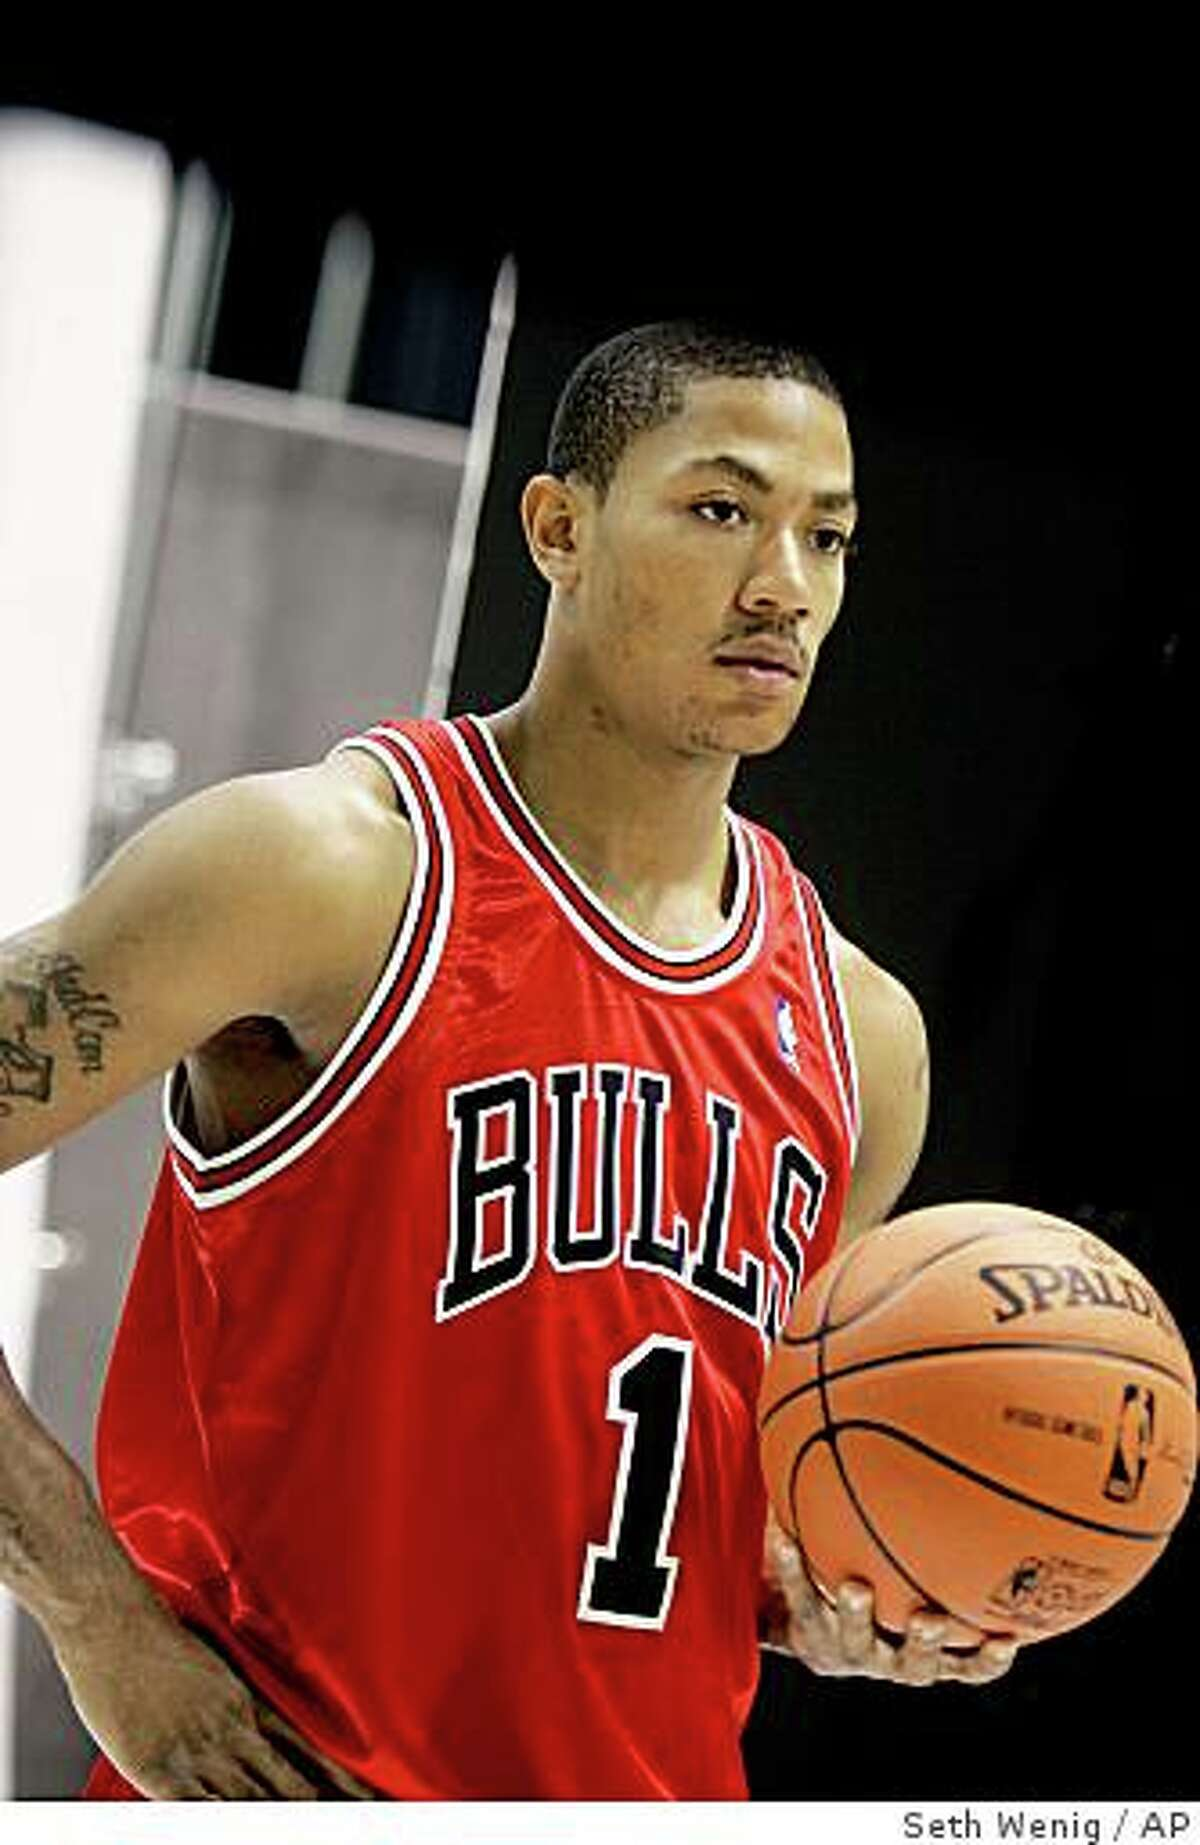 Chicago Bulls' Derrick Rose poses for a photo during the NBA Rookie Photo Shoot in Tarrytown, N.Y., Tuesday July 29, 2008. More than thirty of the NBA's newest players had their photos taken for trading cards during the event. (AP Photo/Seth Wenig)